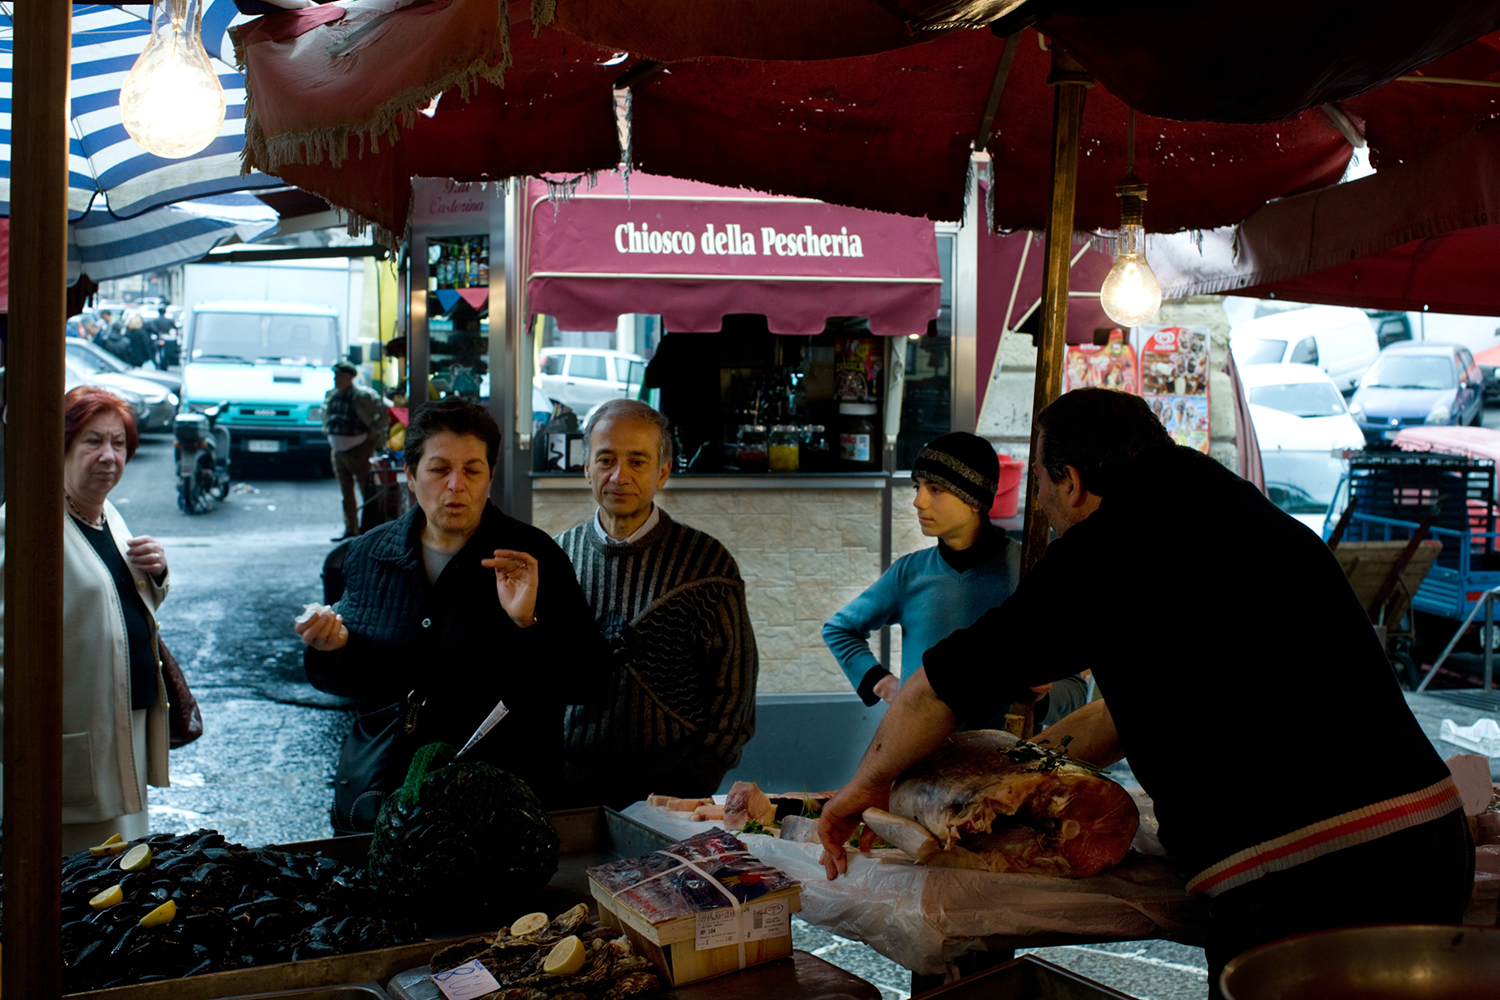 Fish Market Chico! Read my earlier post to learn about these drink shacks unique to Catania.